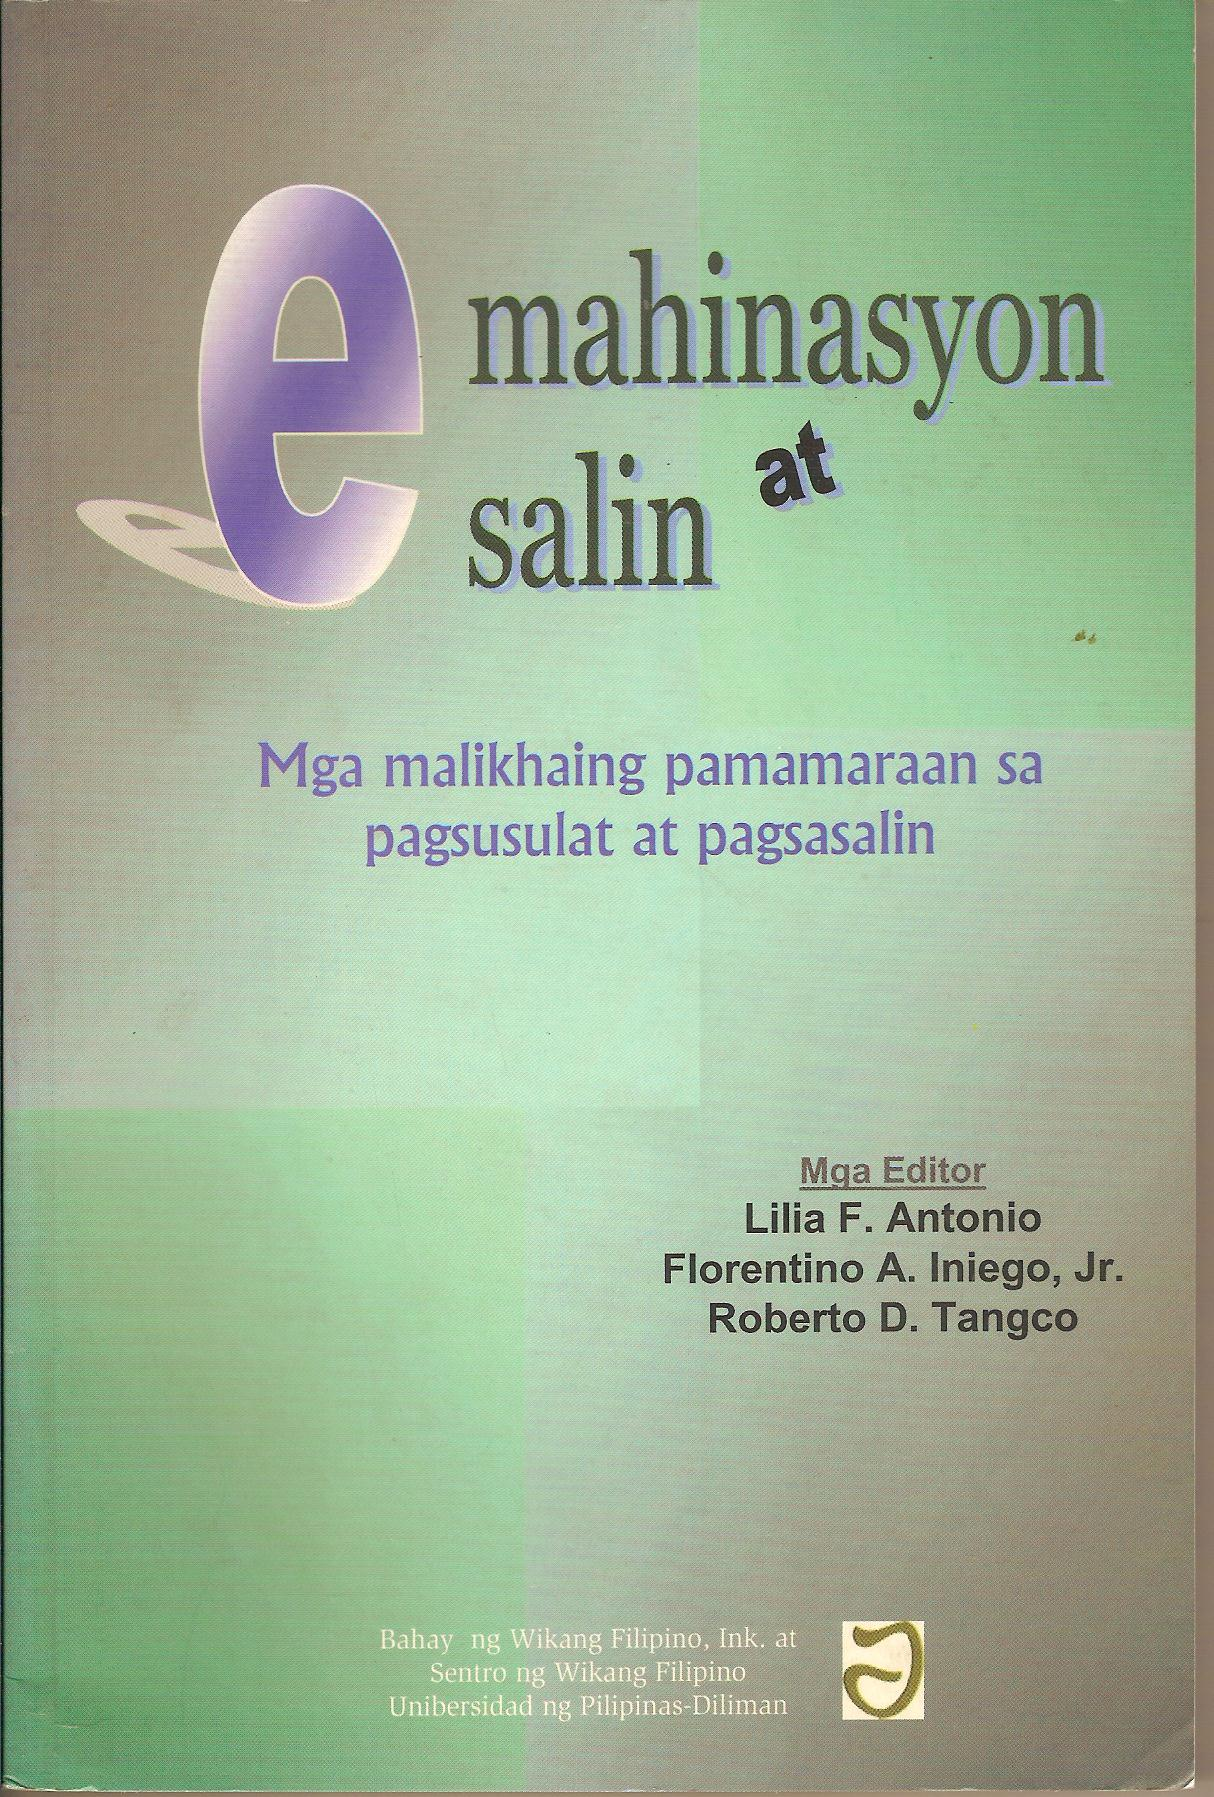 E-mahinasyon at E-salin